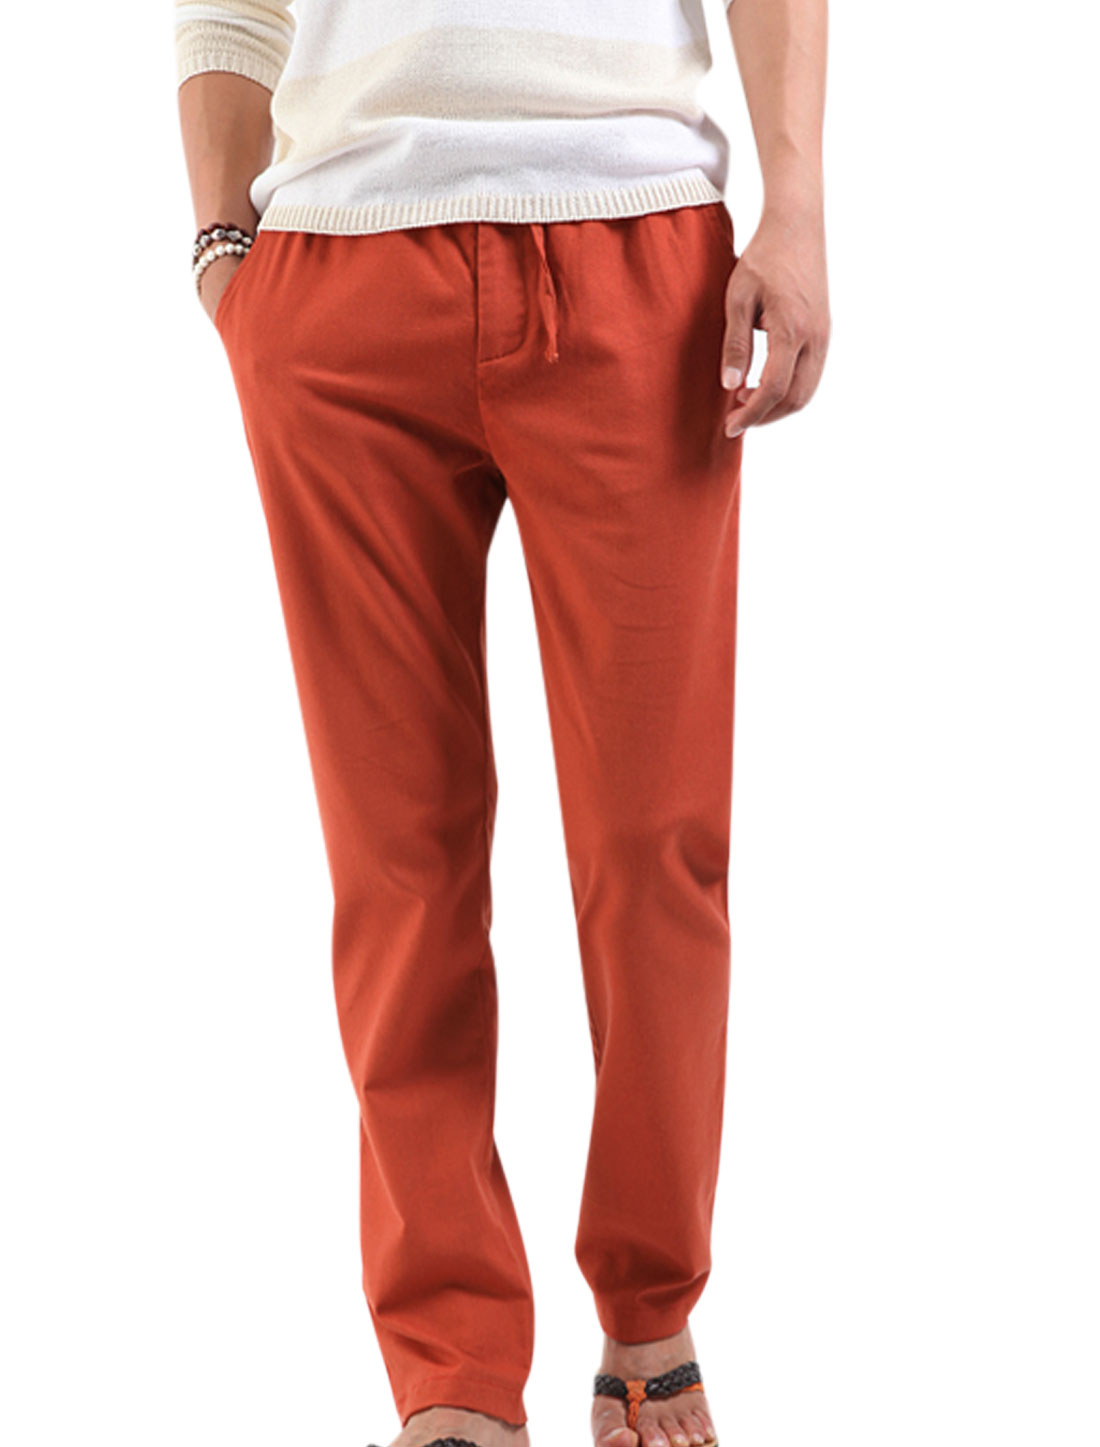 Men Elastic Drawstring Waist Zip Fly Linen Pants Dark Orange W28